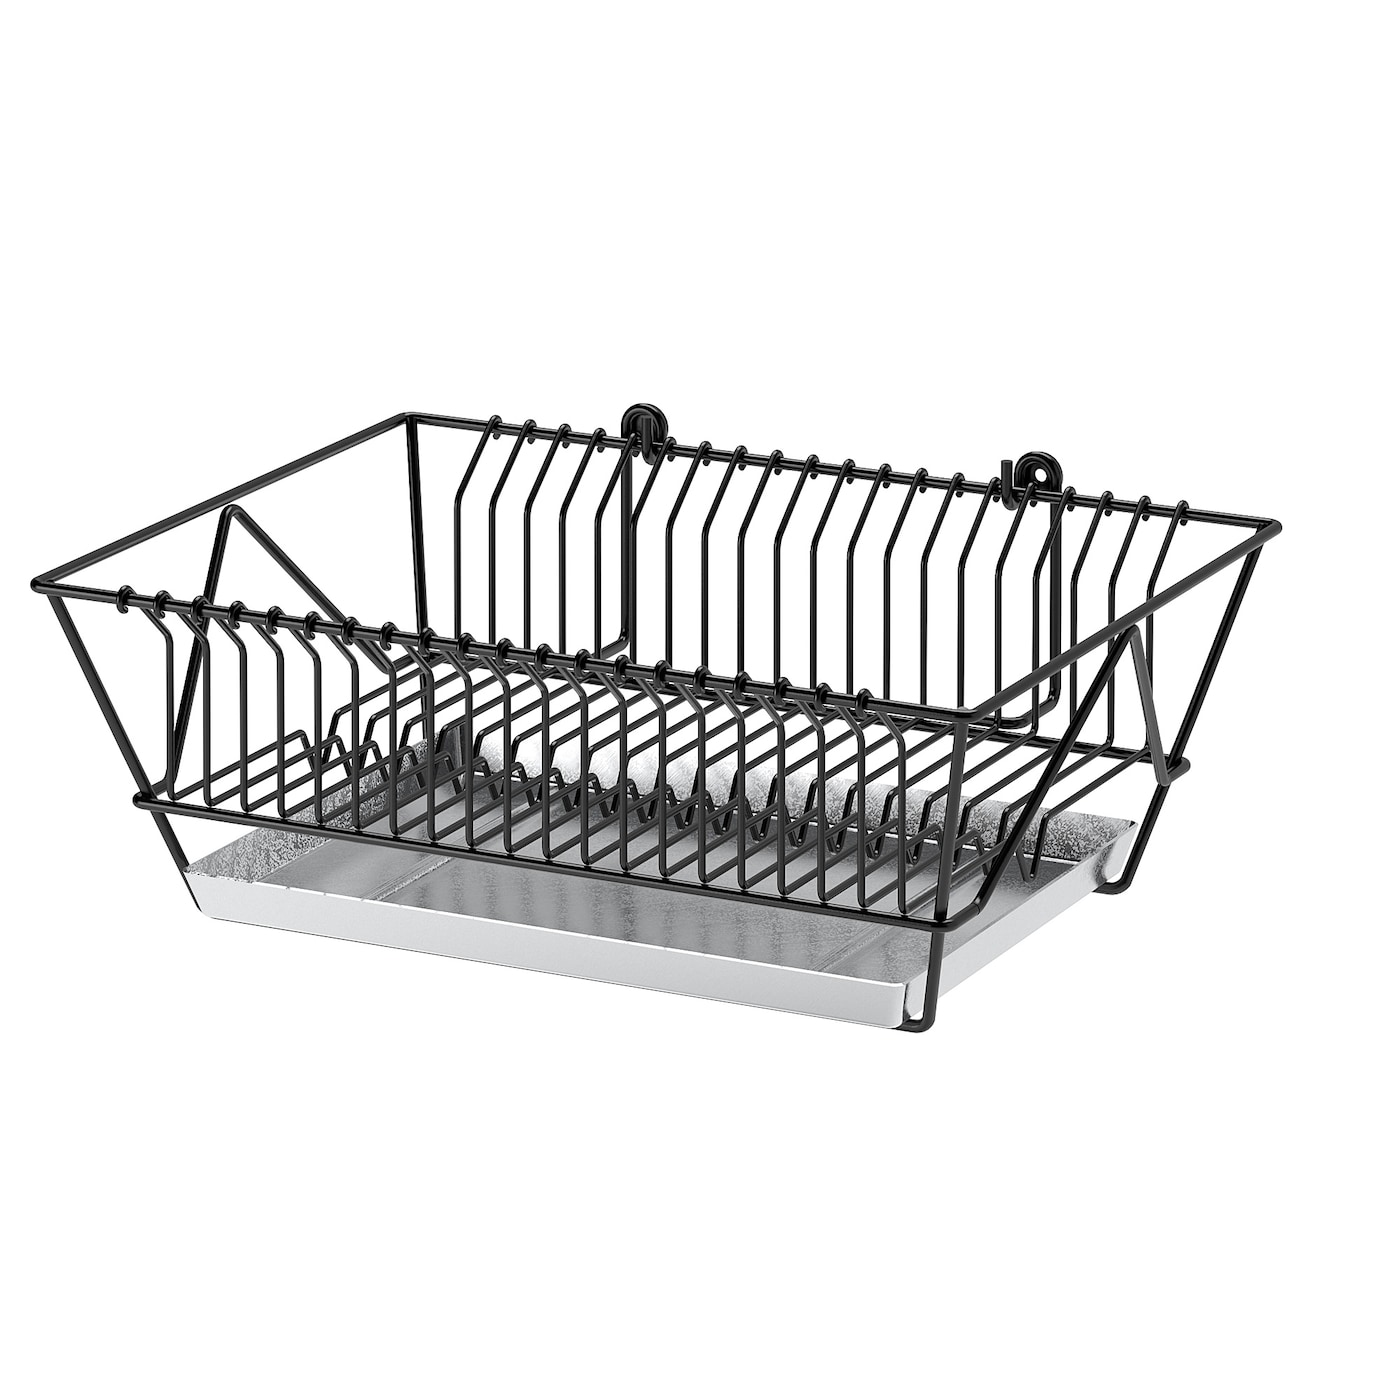 IKEA FINTORP dish drainer Can be hung on the wall or placed on the worktop.